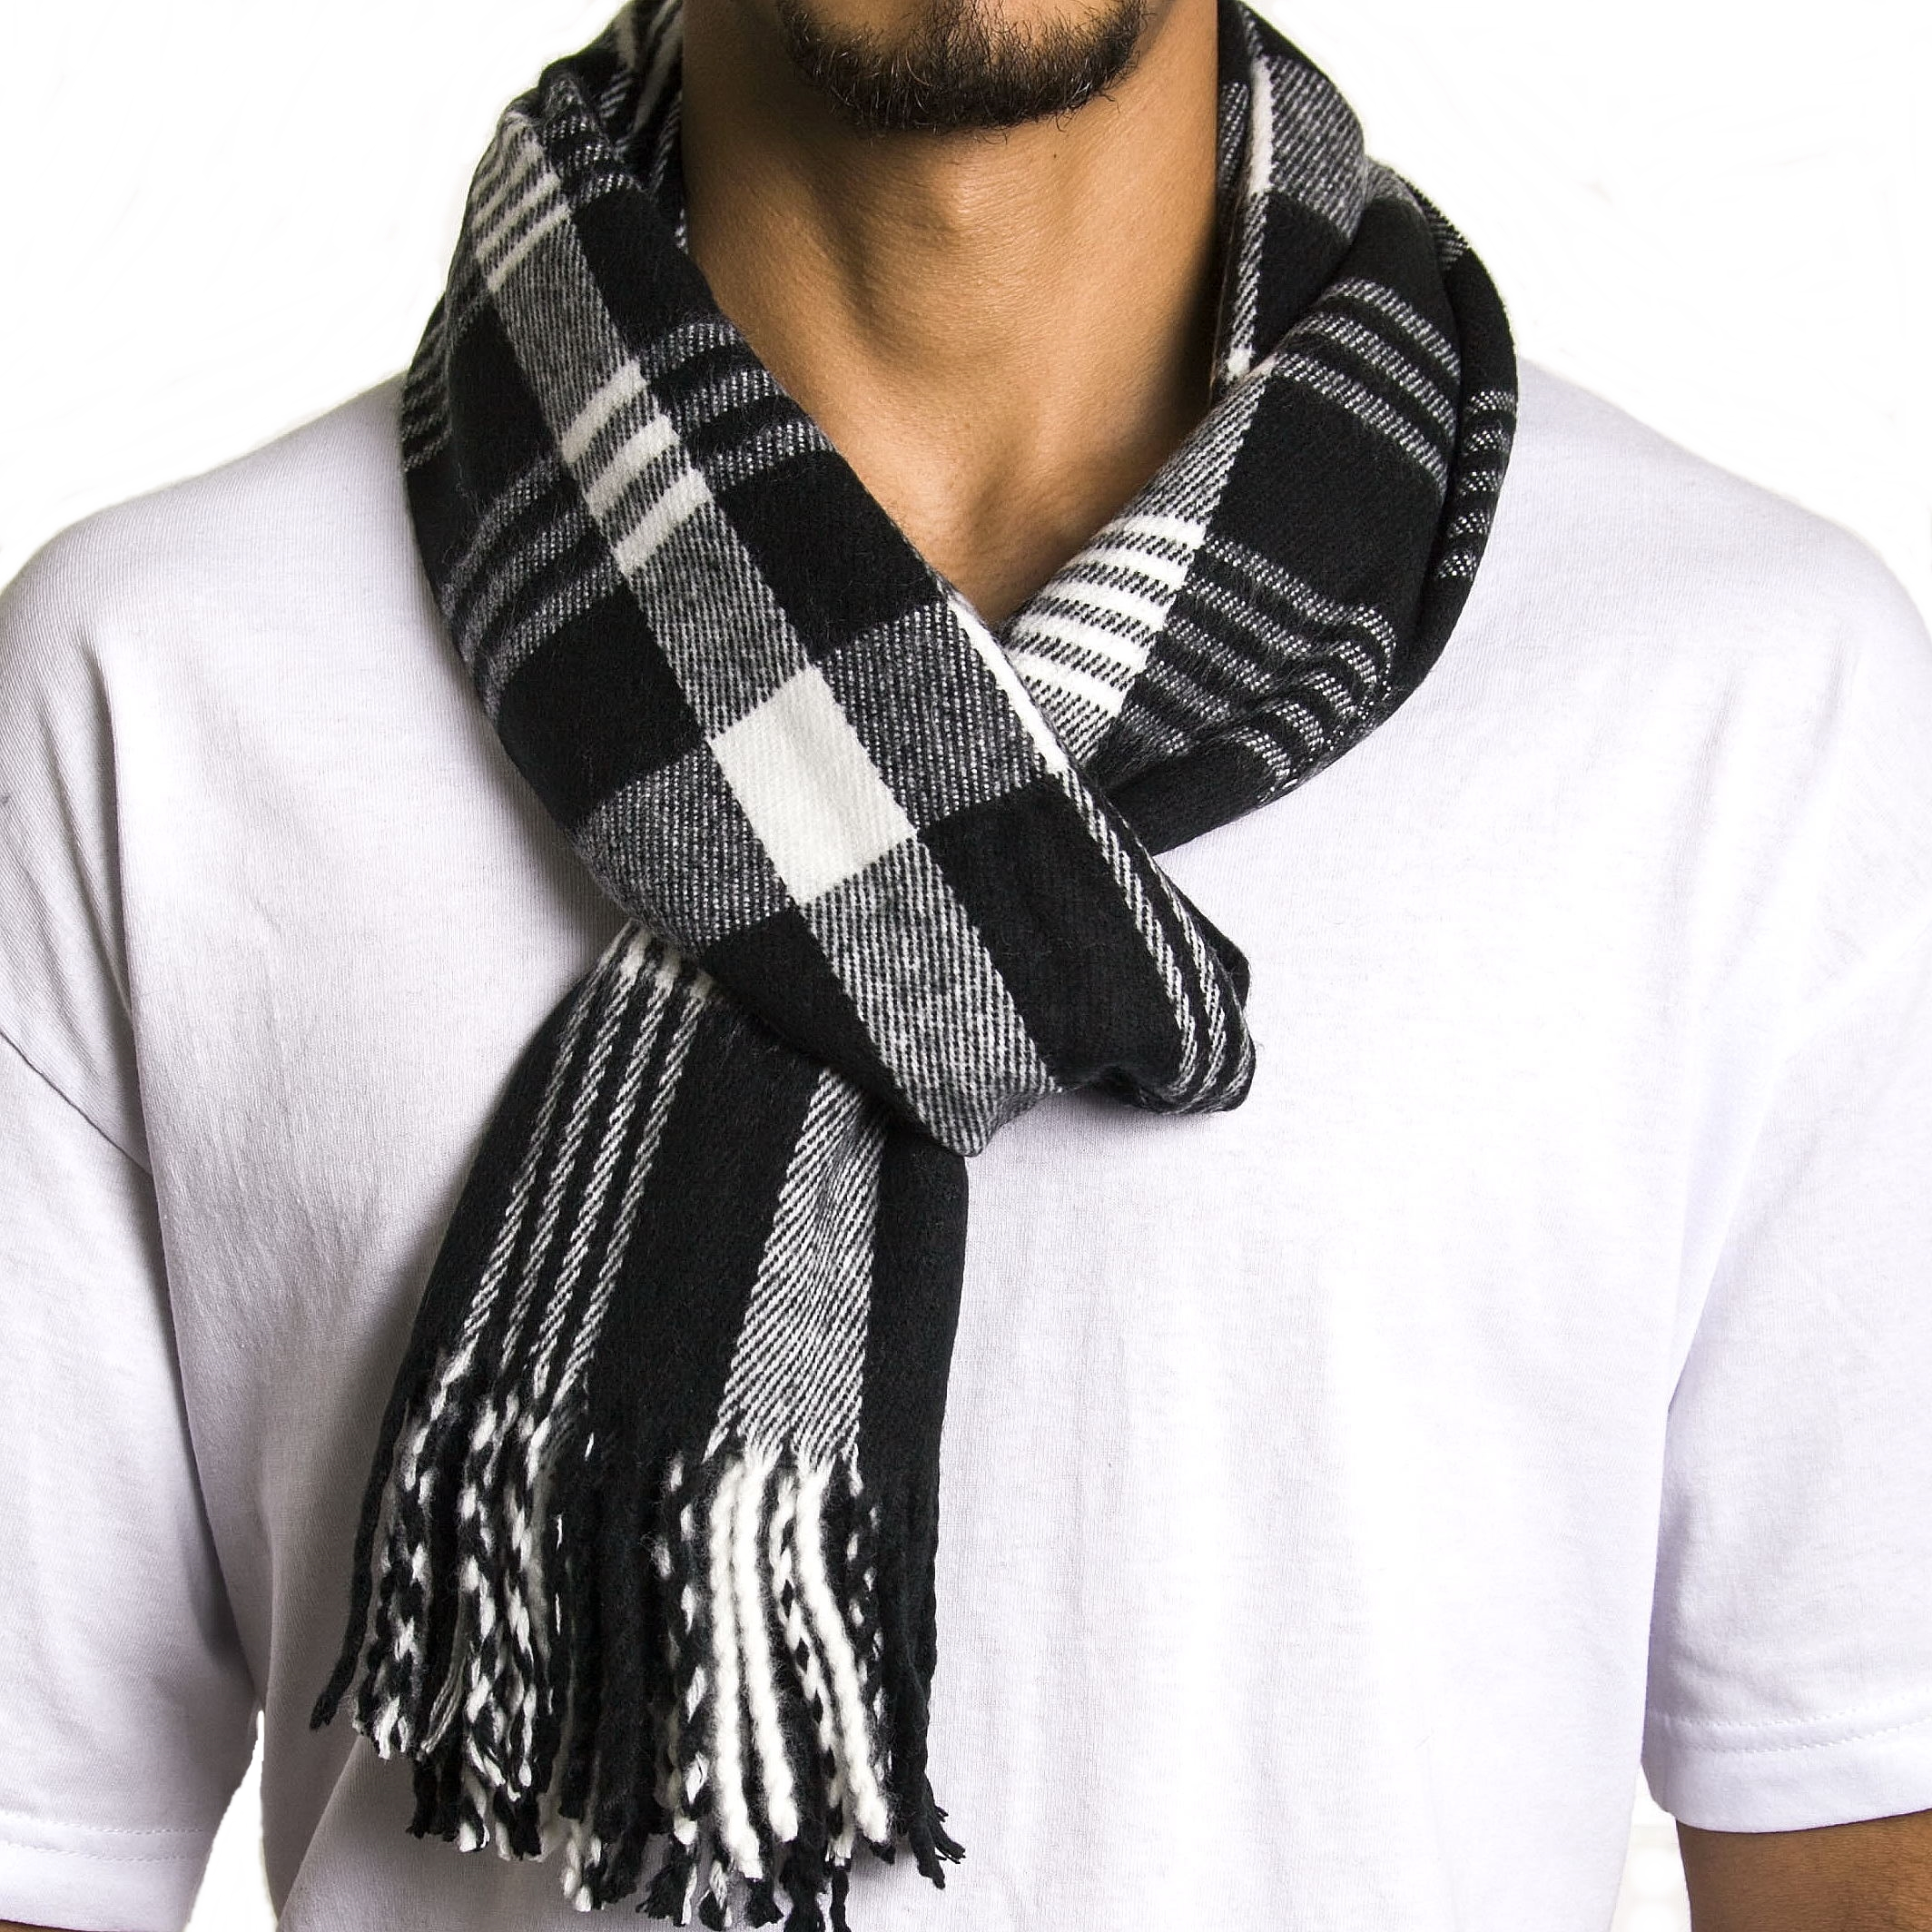 Men's retro & mod scarves at Atom Retro. Mod silk Tootal & Peckham Rye Scarves, retro 70s knitted scarves. Fast delivery.